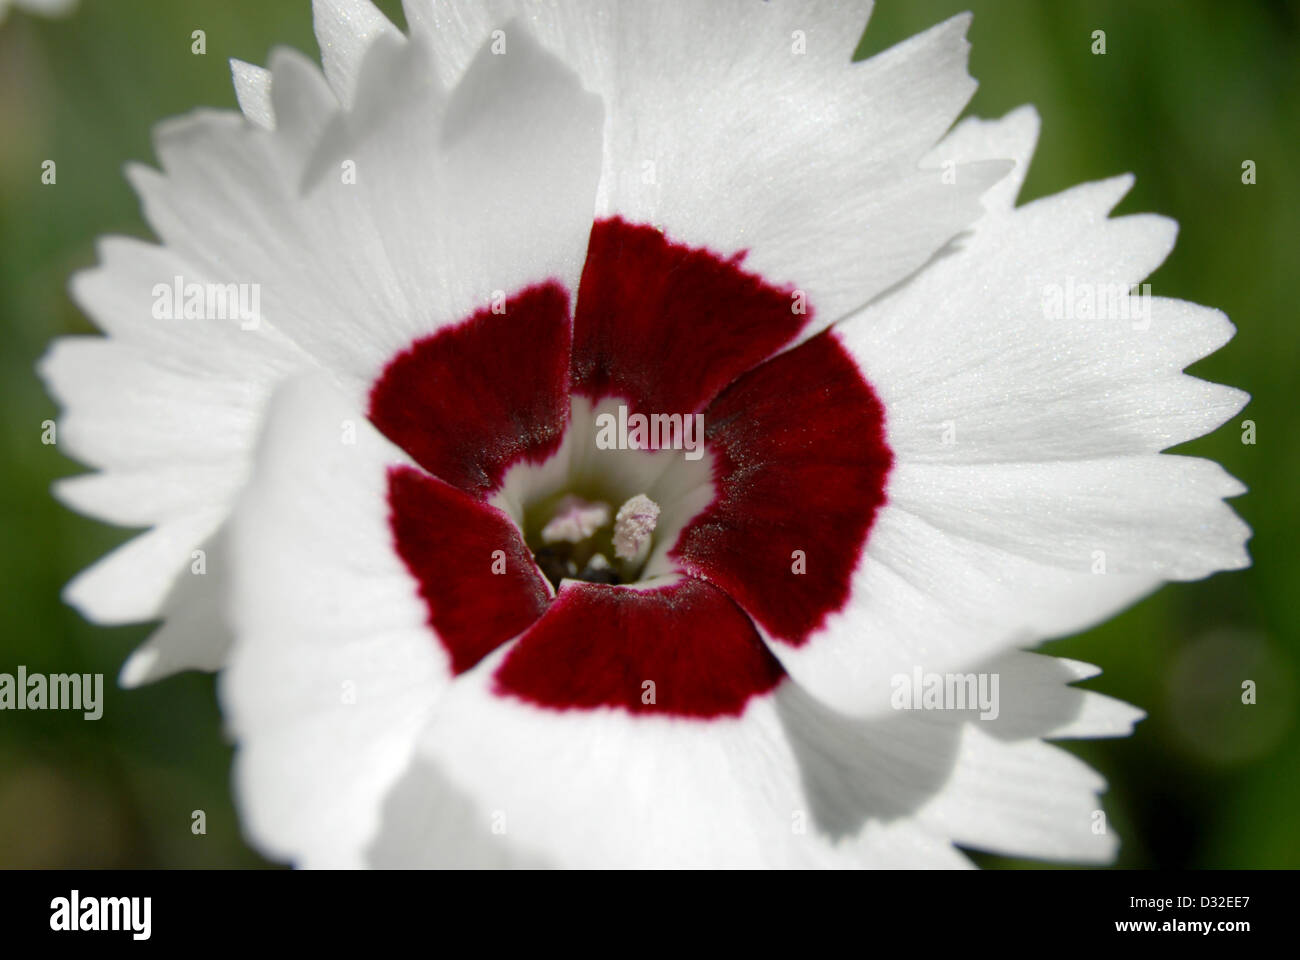 Red and white sweet william flower dianthus barbatus stock photo red and white sweet william flower dianthus barbatus mightylinksfo